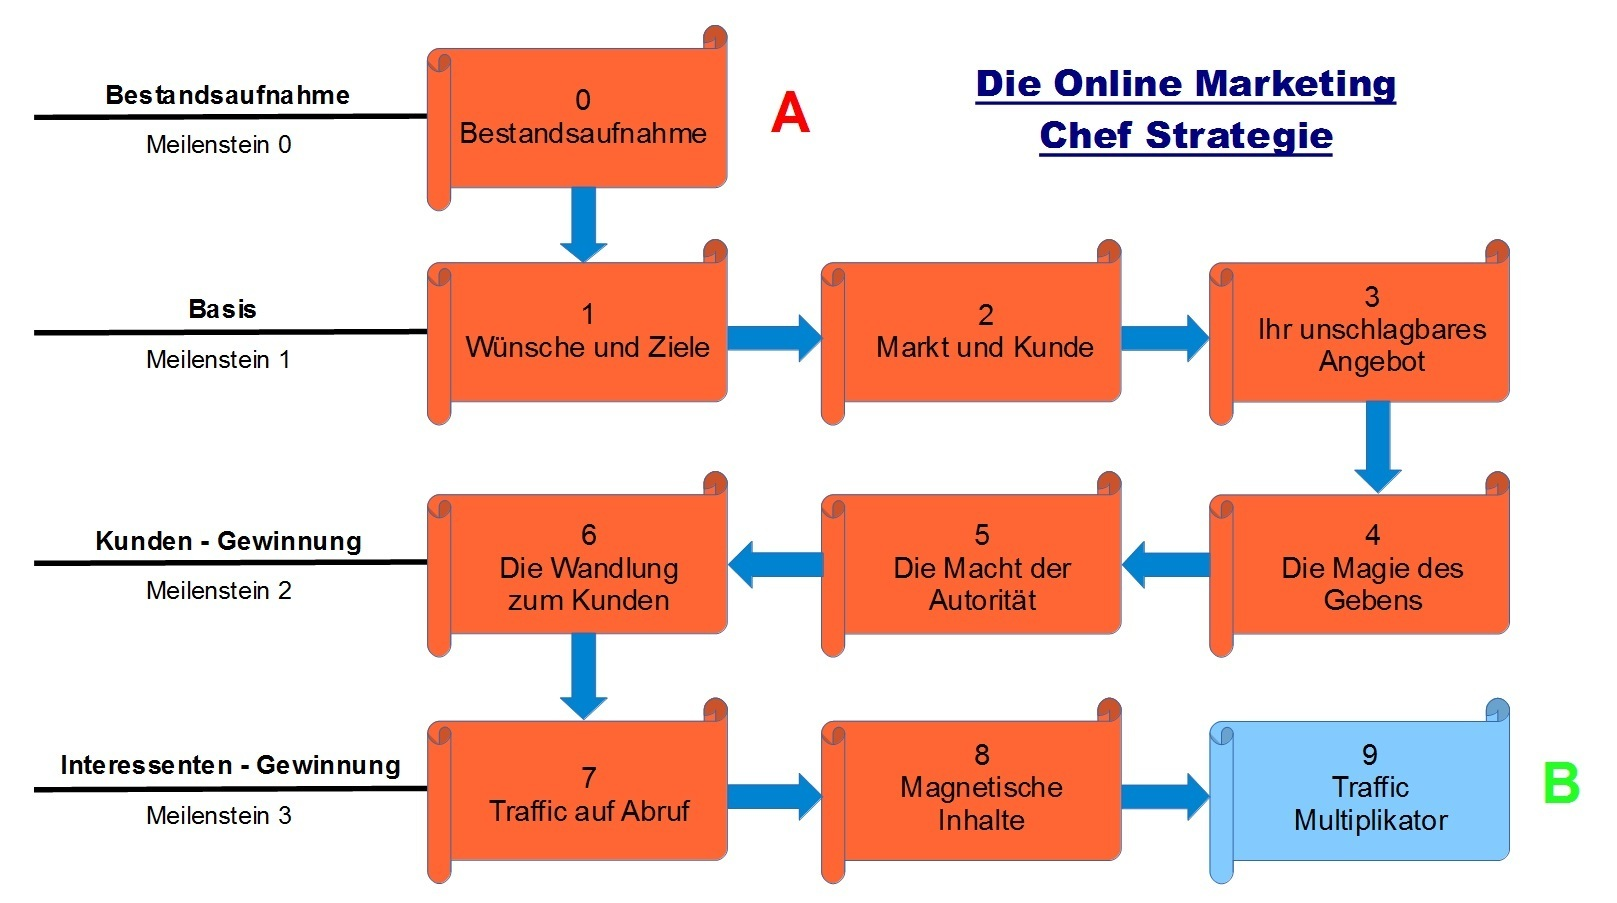 Schritt 9 - Die Online Marketing Chef Strategie